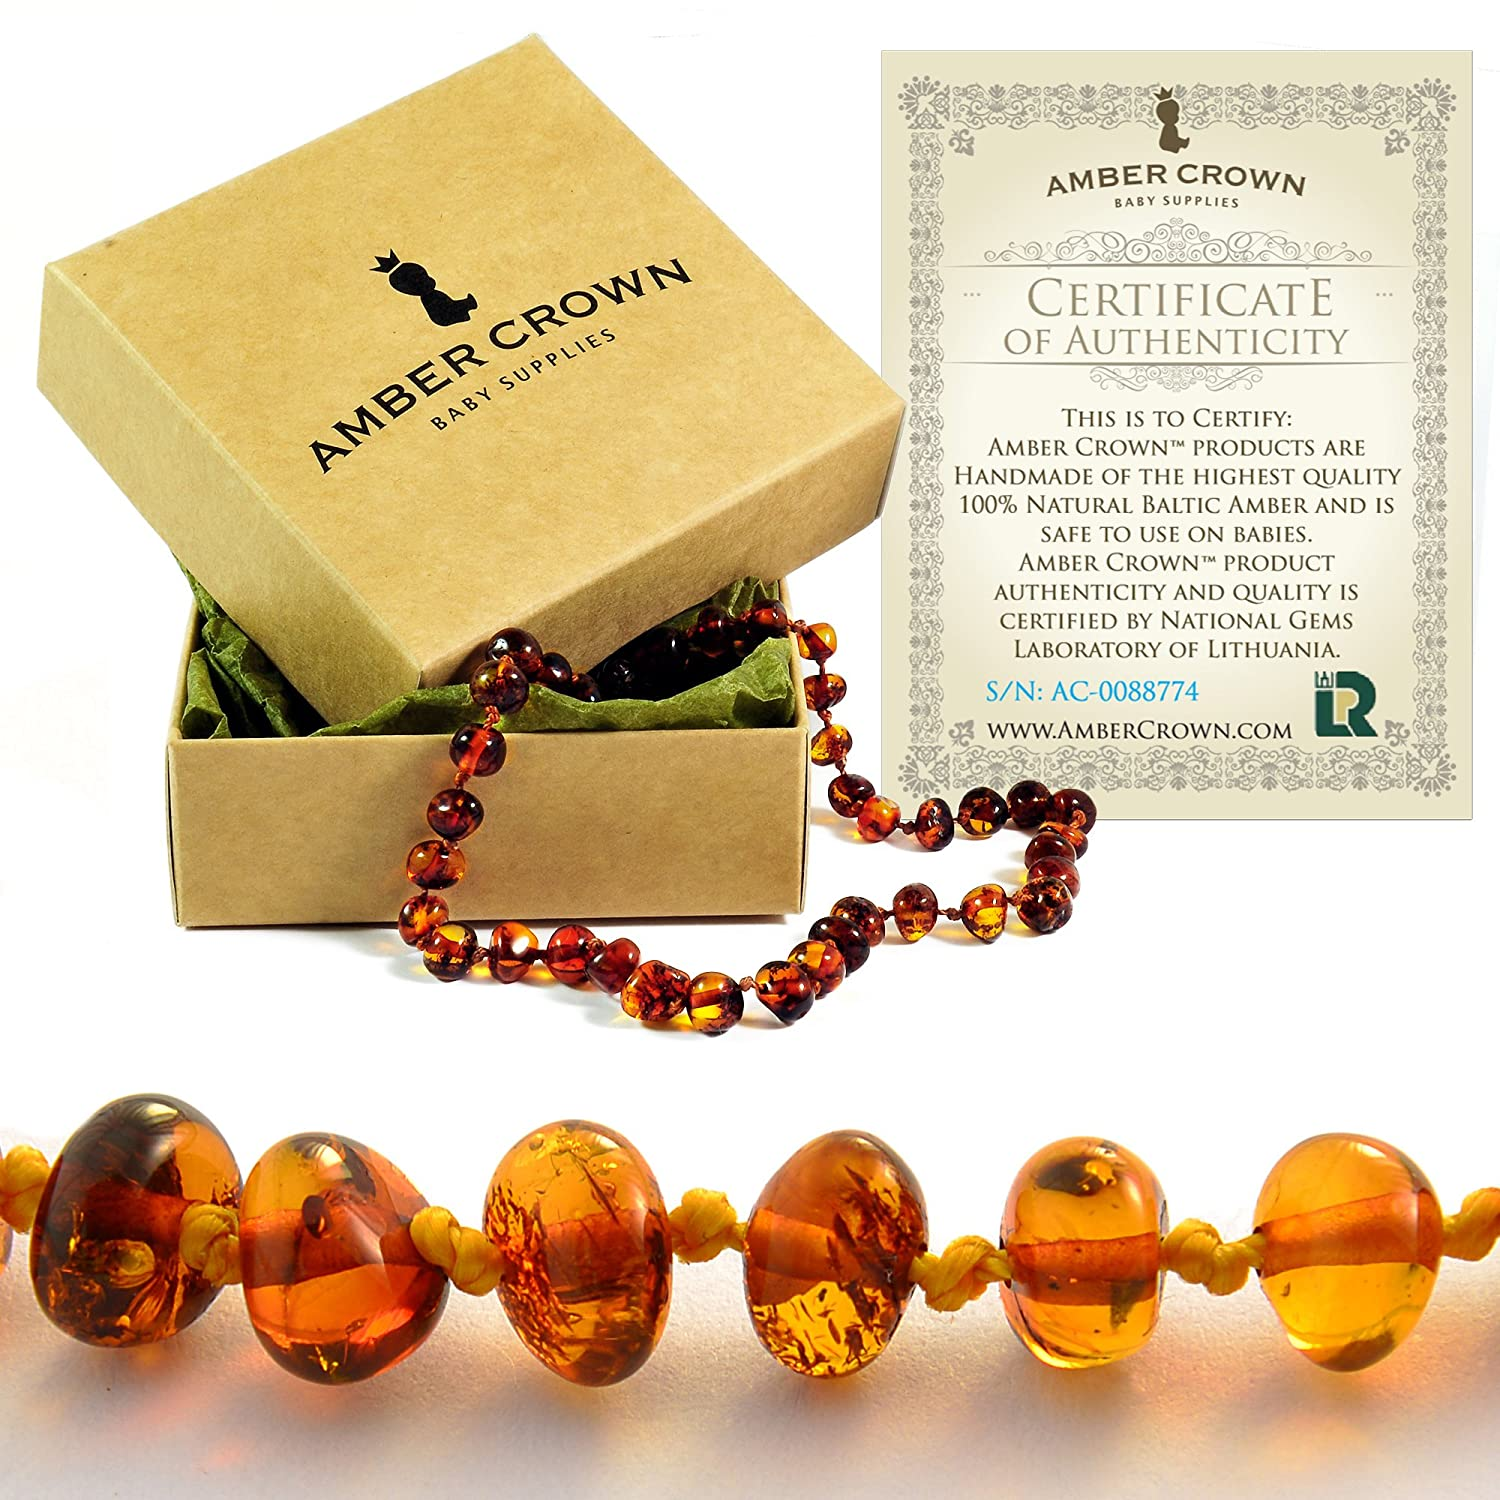 Baltic Amber Teething Necklace for Babies - Anti Inflammatory, Drooling and Teething Pain Reducing Natural Remedy - Polished Greenish Certified Baltic Amber Beads AMBER CROWN